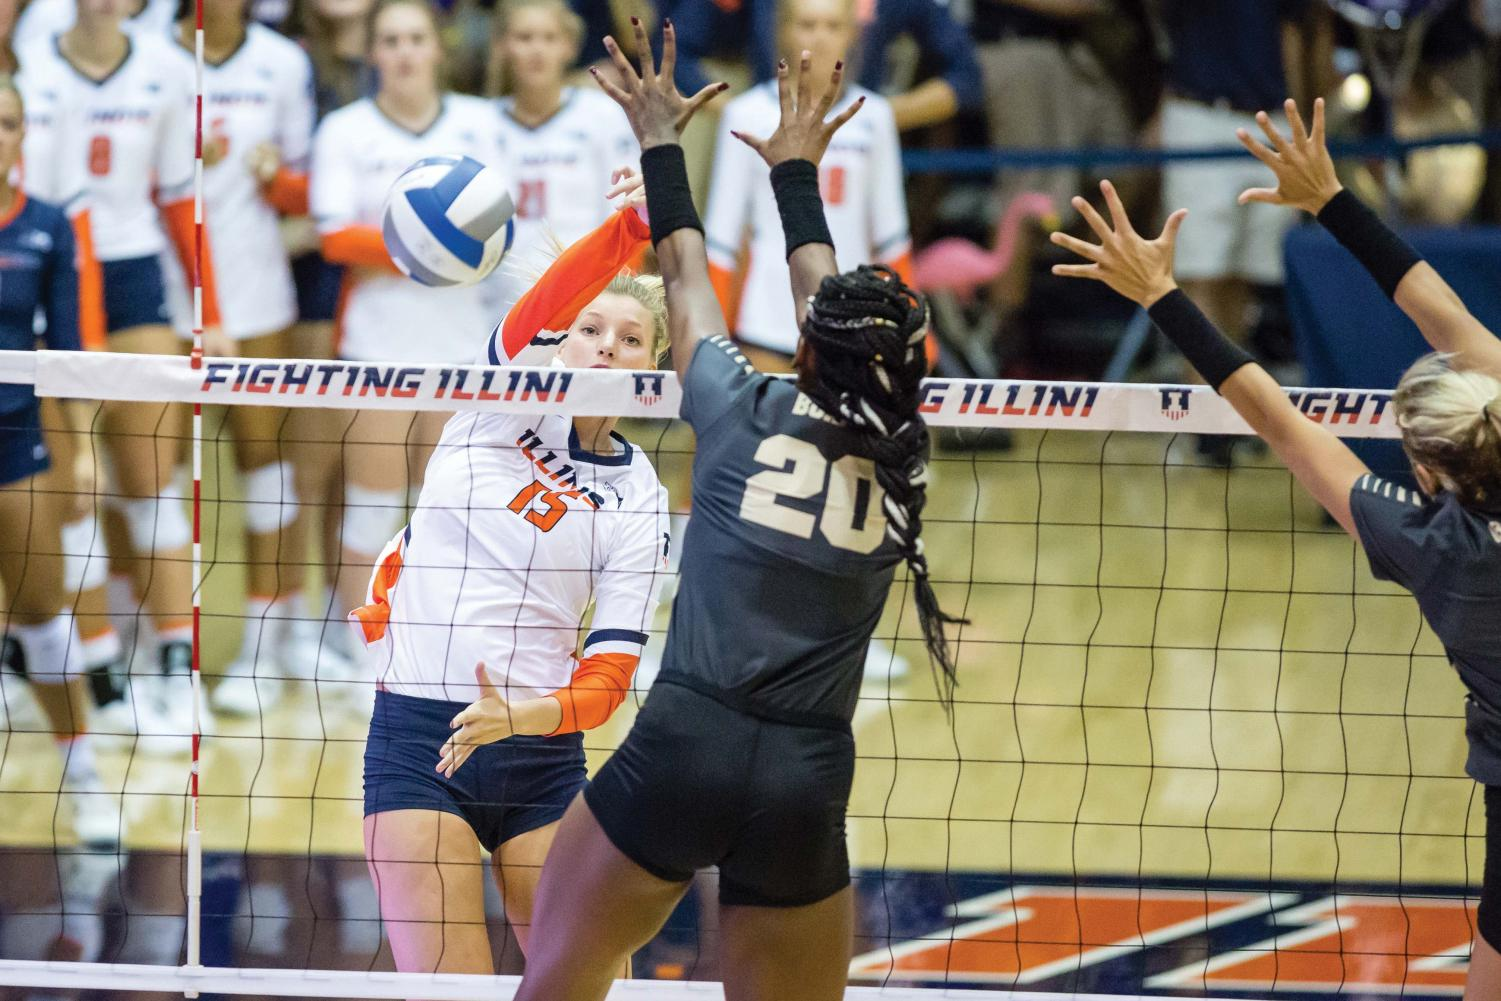 Illinois outside hitter Megan Cooney (15) hits the ball during the match against Purdue at Huff Hall on Friday, October 6. The Illini lost 3-0.